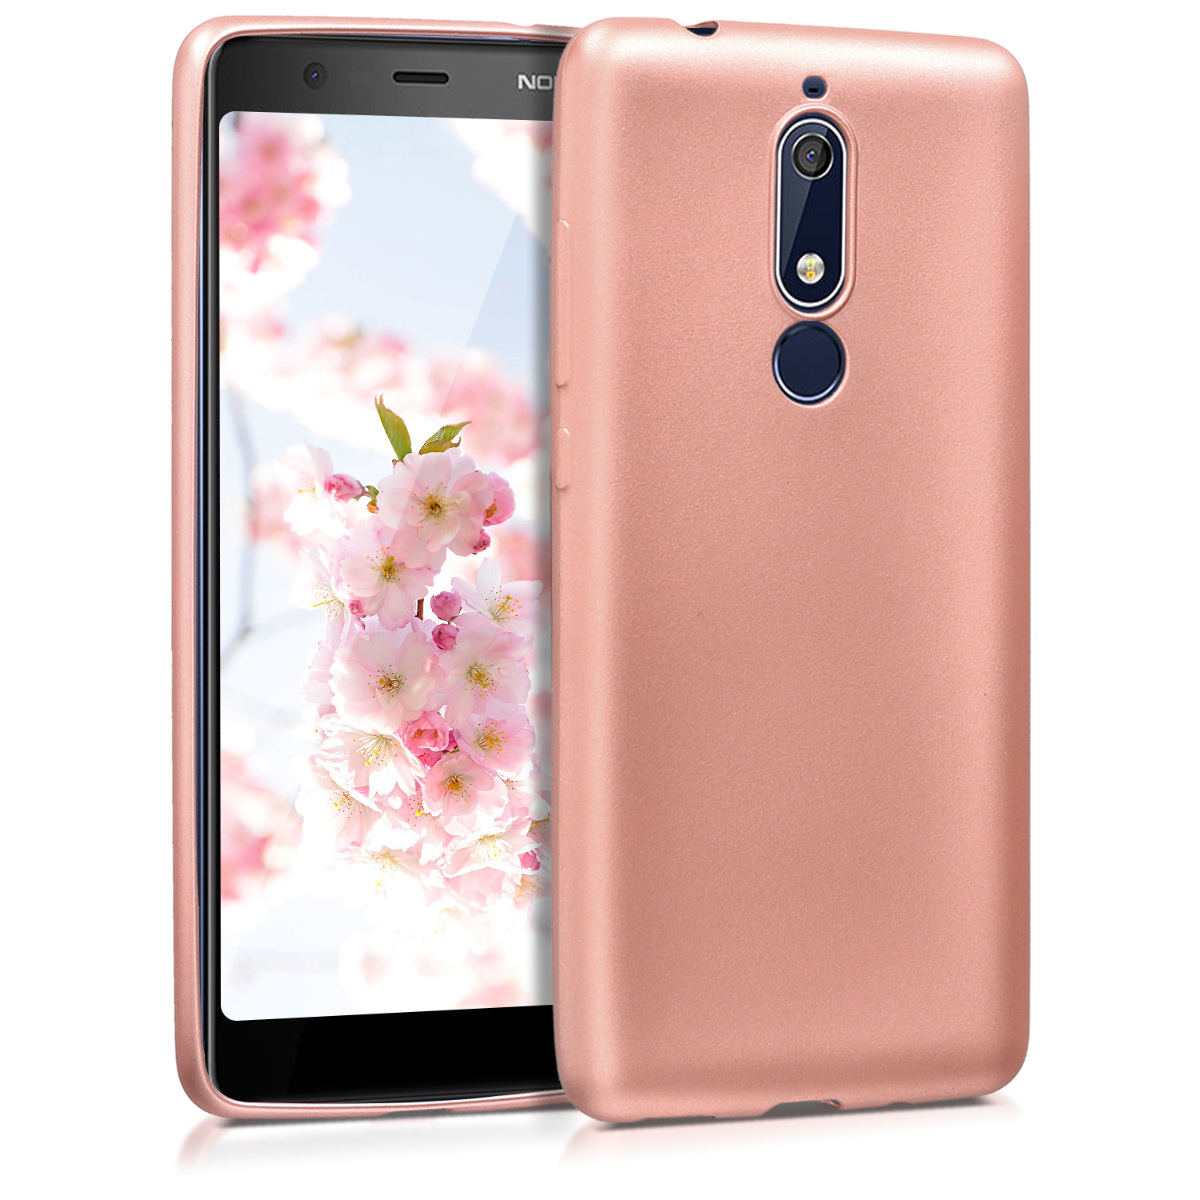 KW Θήκη Σιλικόνης Nokia 5.1 (2018) - Soft Flexible Shock Absorbent - Metallic Rose Gold (45402.31)